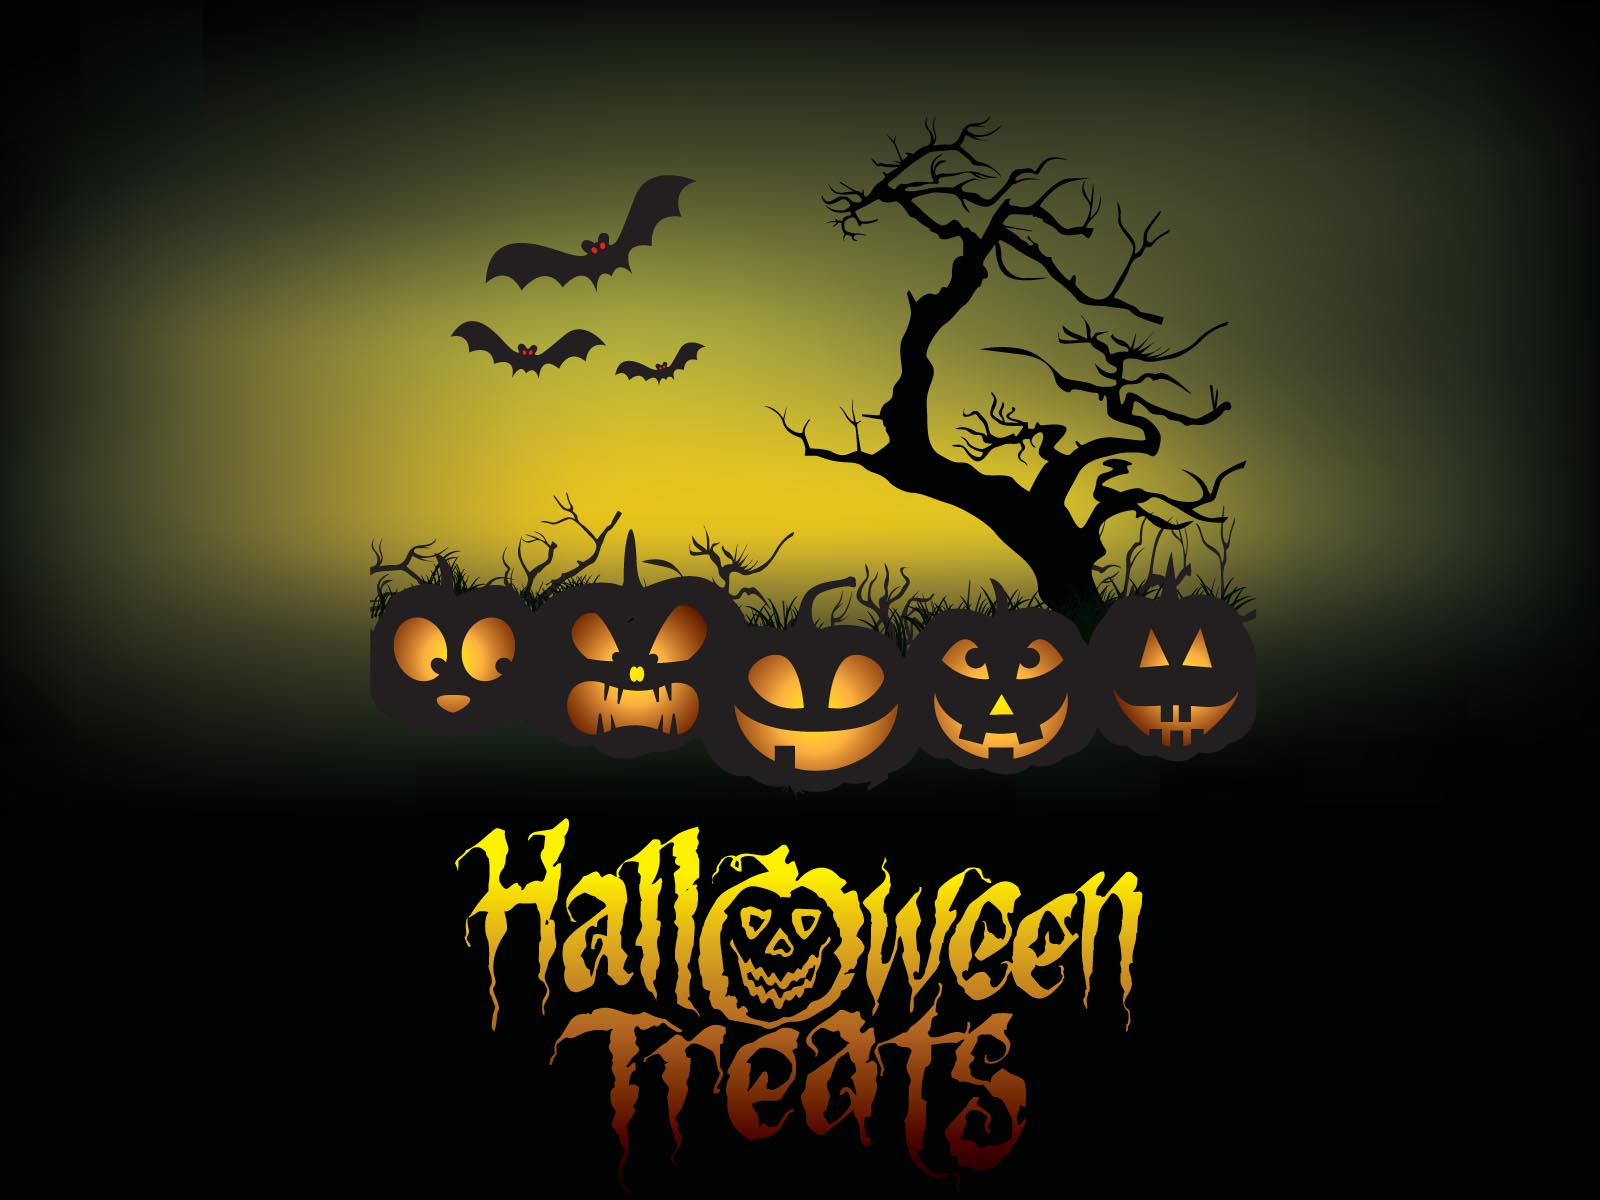 Halloween Treats poster backgrounds